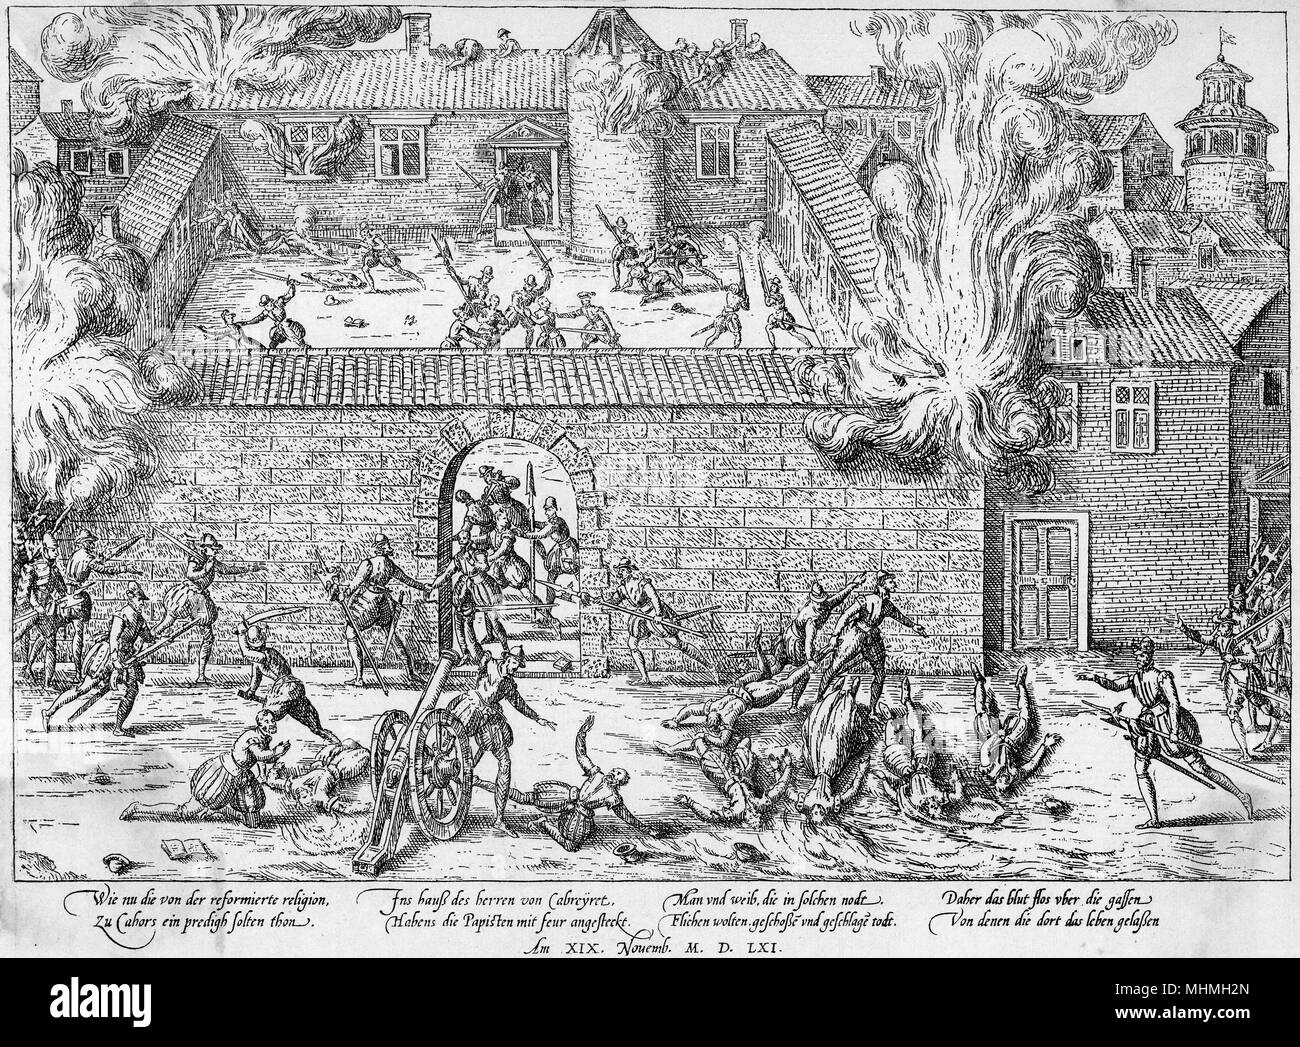 The massacre of Huguenots at Cahors Date: 1562 - Stock Image